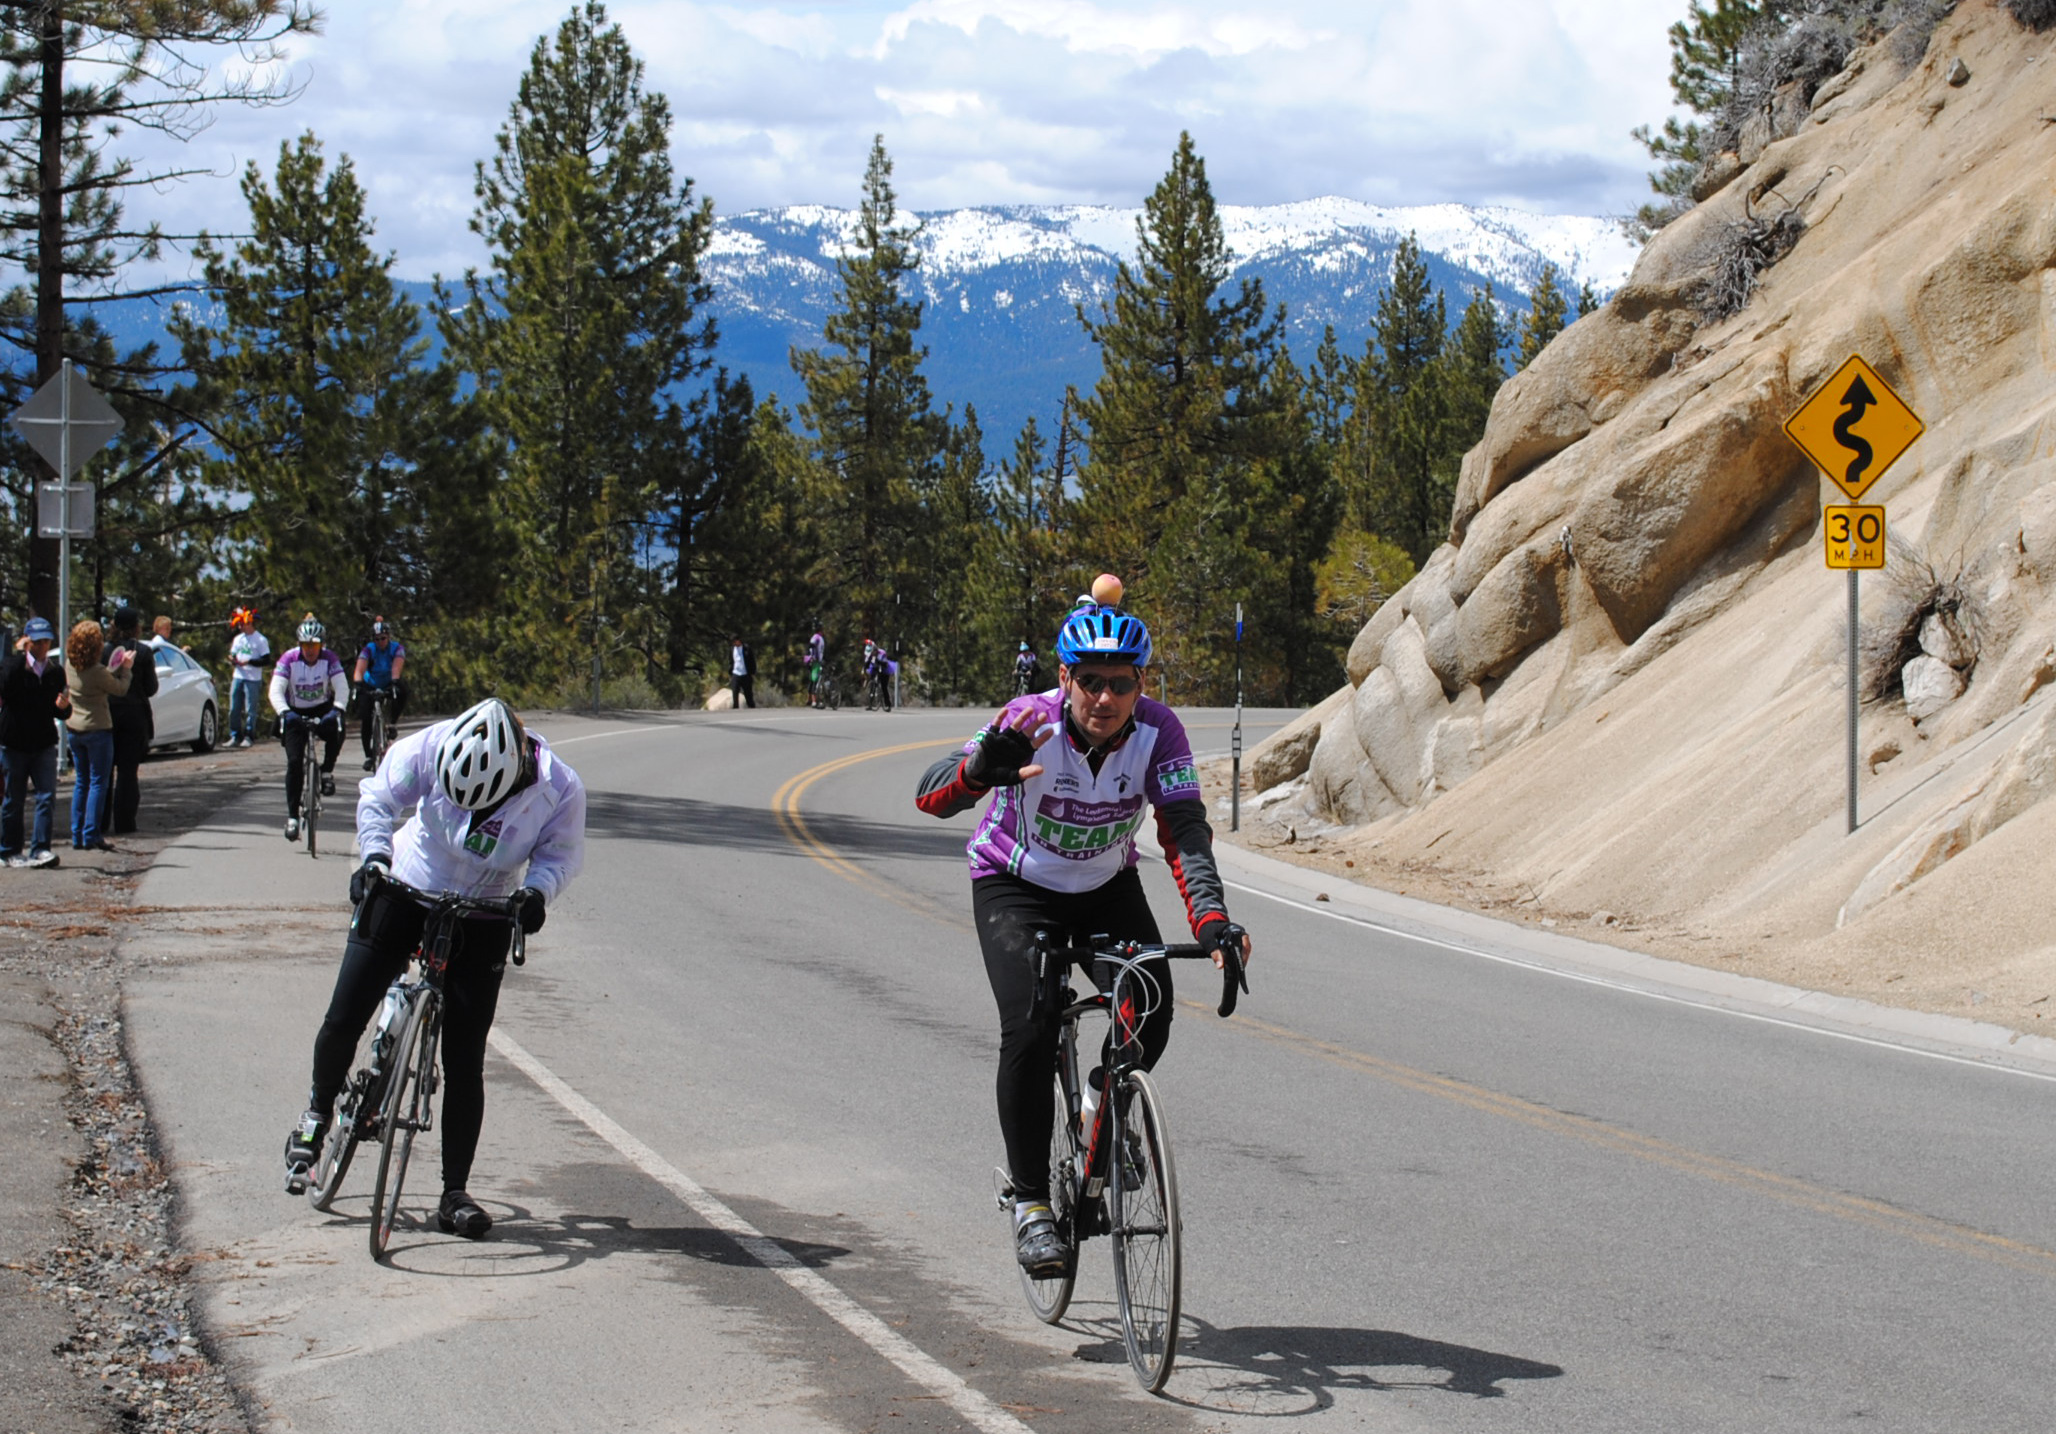 I am about halfway up the long Spooner mountain climb at Lake Tahoe, only 15 miles from the finish line